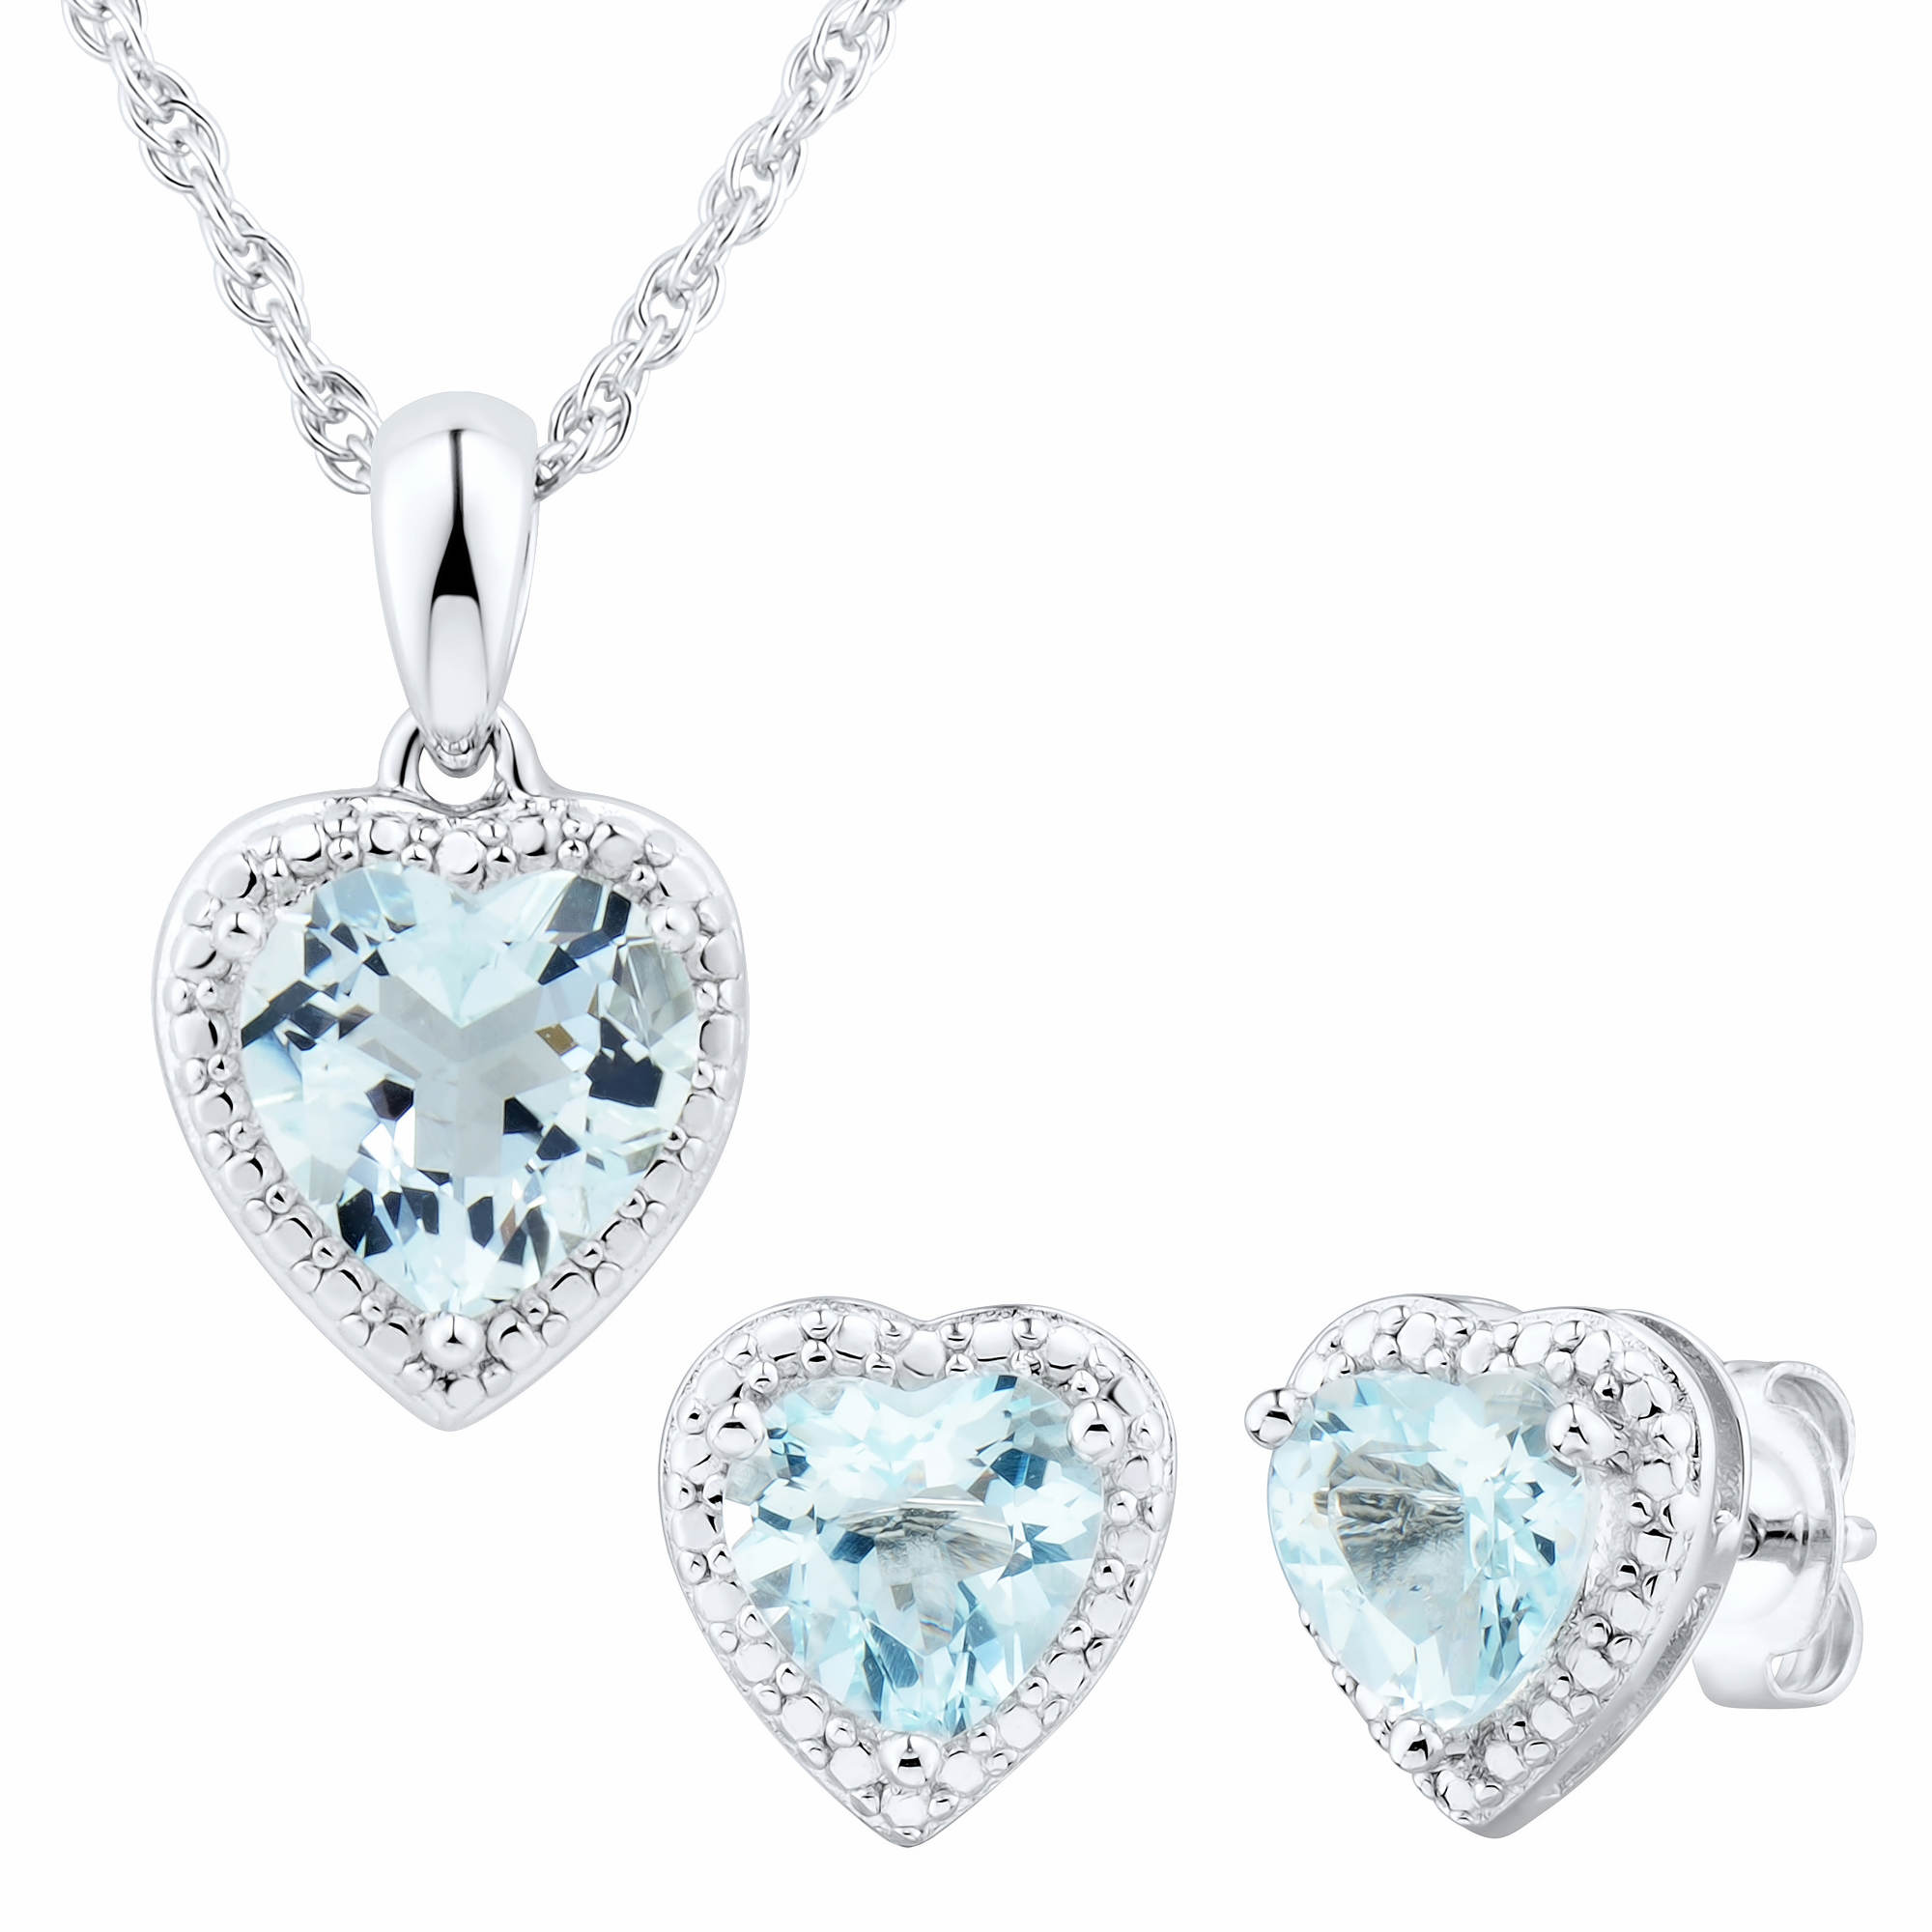 Aquamarine Heart-Shaped 2-Pc. Jewelry Set in Sterling Silver